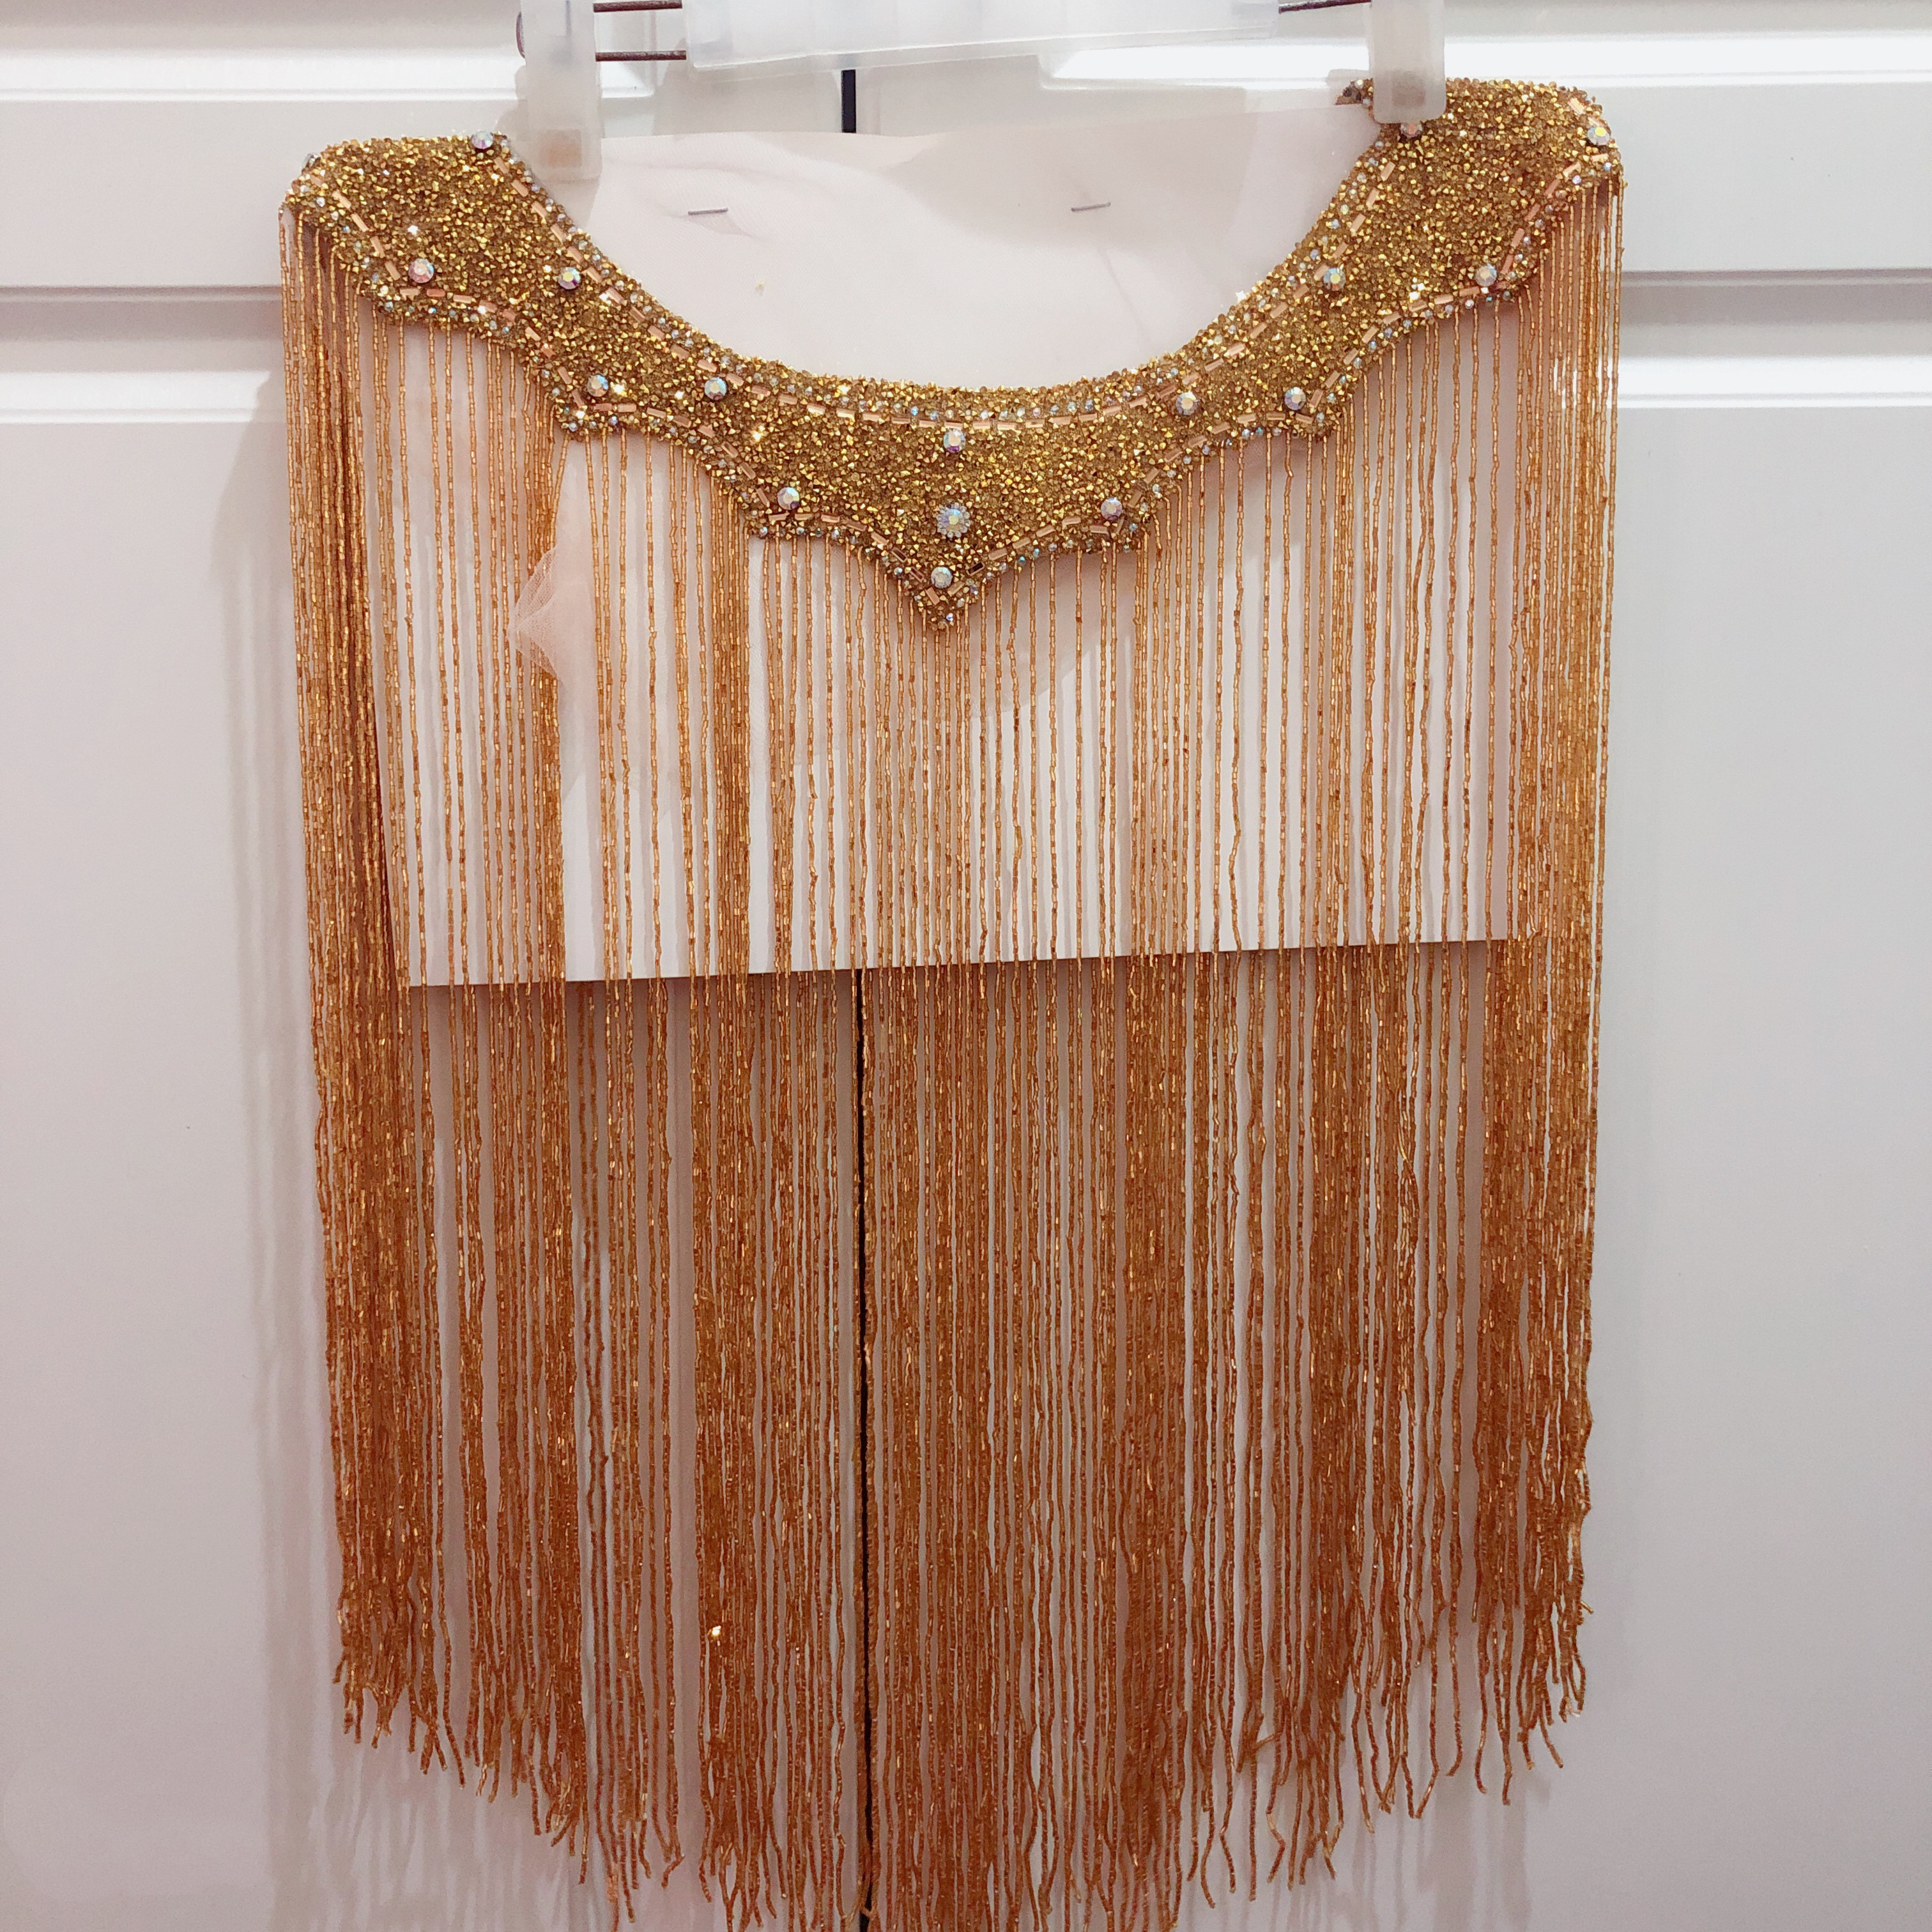 hot sale new wedding embroidered crystal beaded tassels collar appliques mneckline with 50cm fringe trim